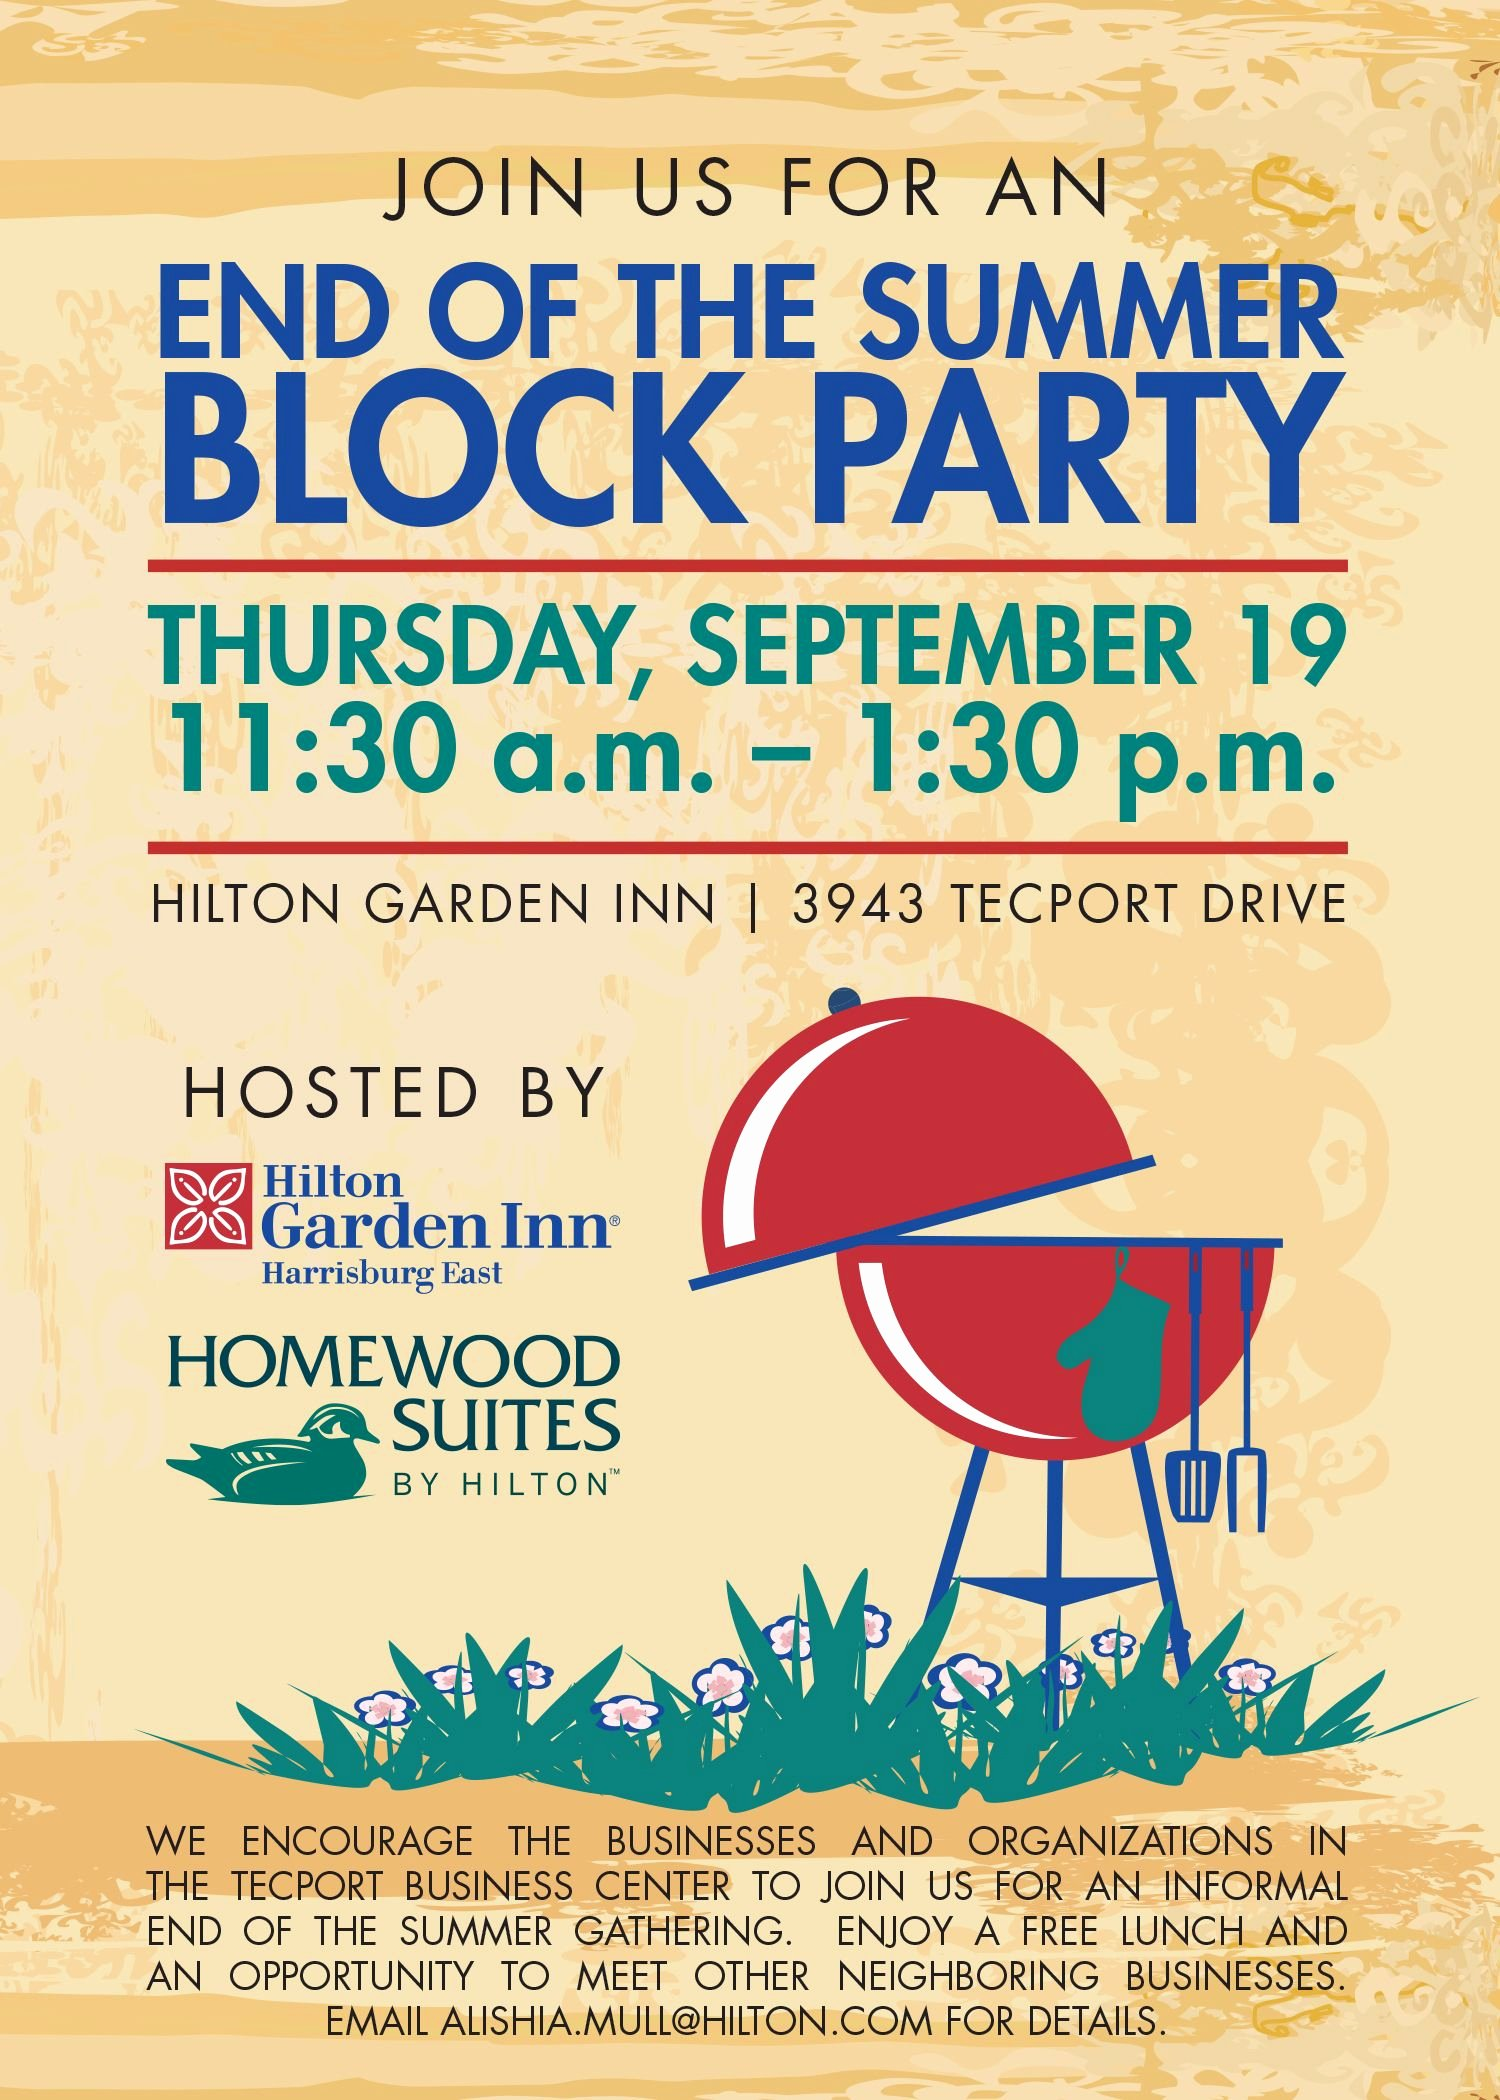 Block Party Invitation Template Beautiful Block Party Invitation for Homewood Suites and Hilton